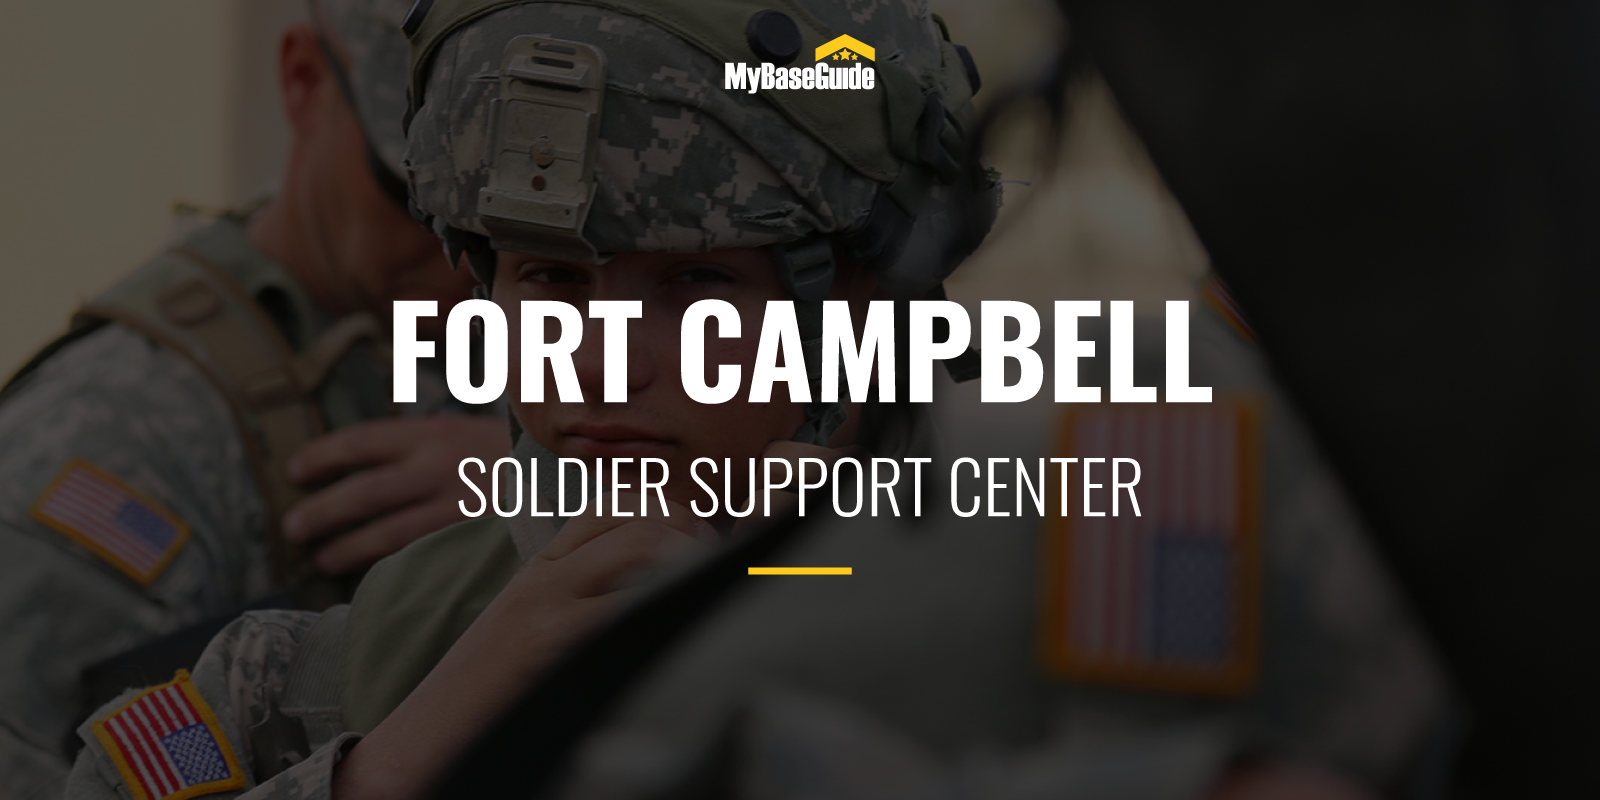 Fort Campbell Soldier Support